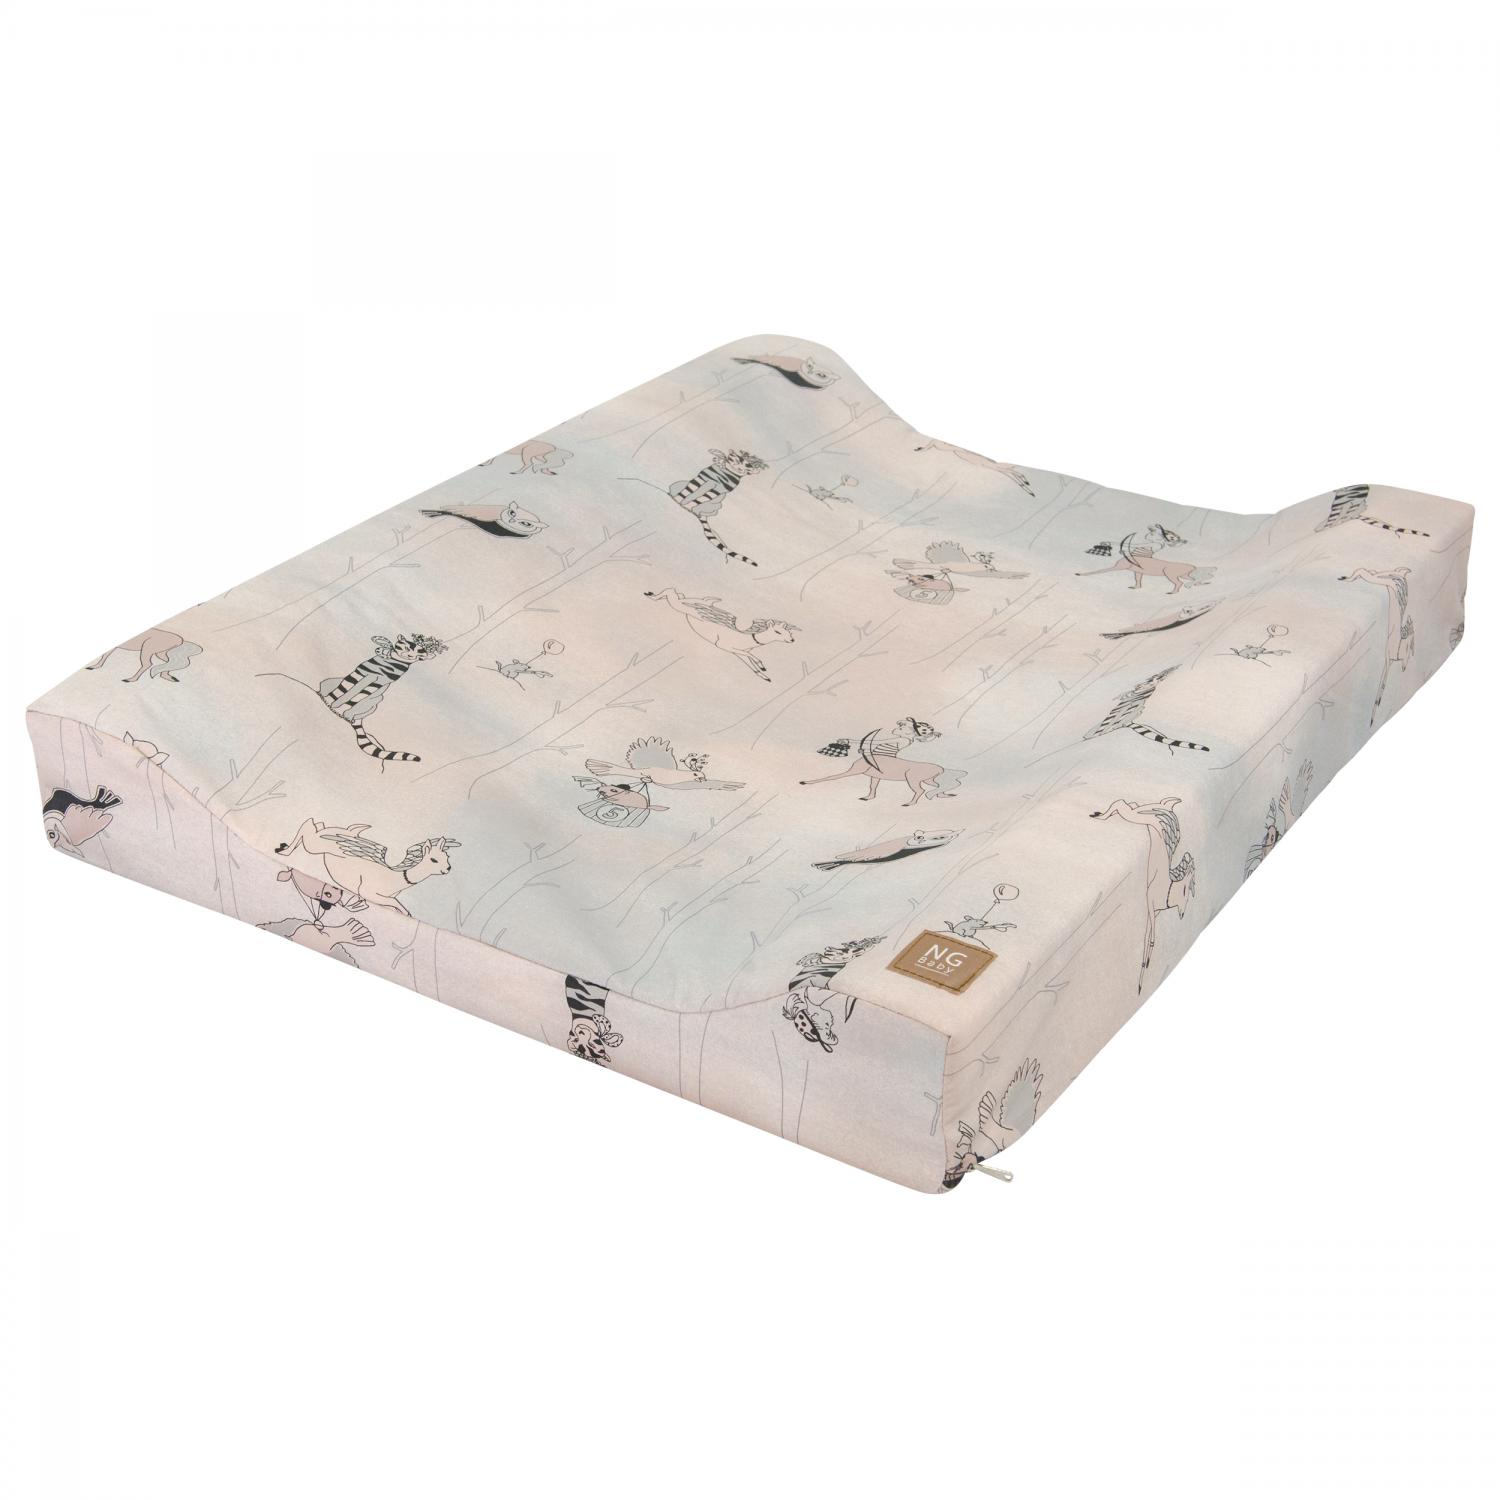 Changing pad standard | Woods rose | Woods & Fairytales